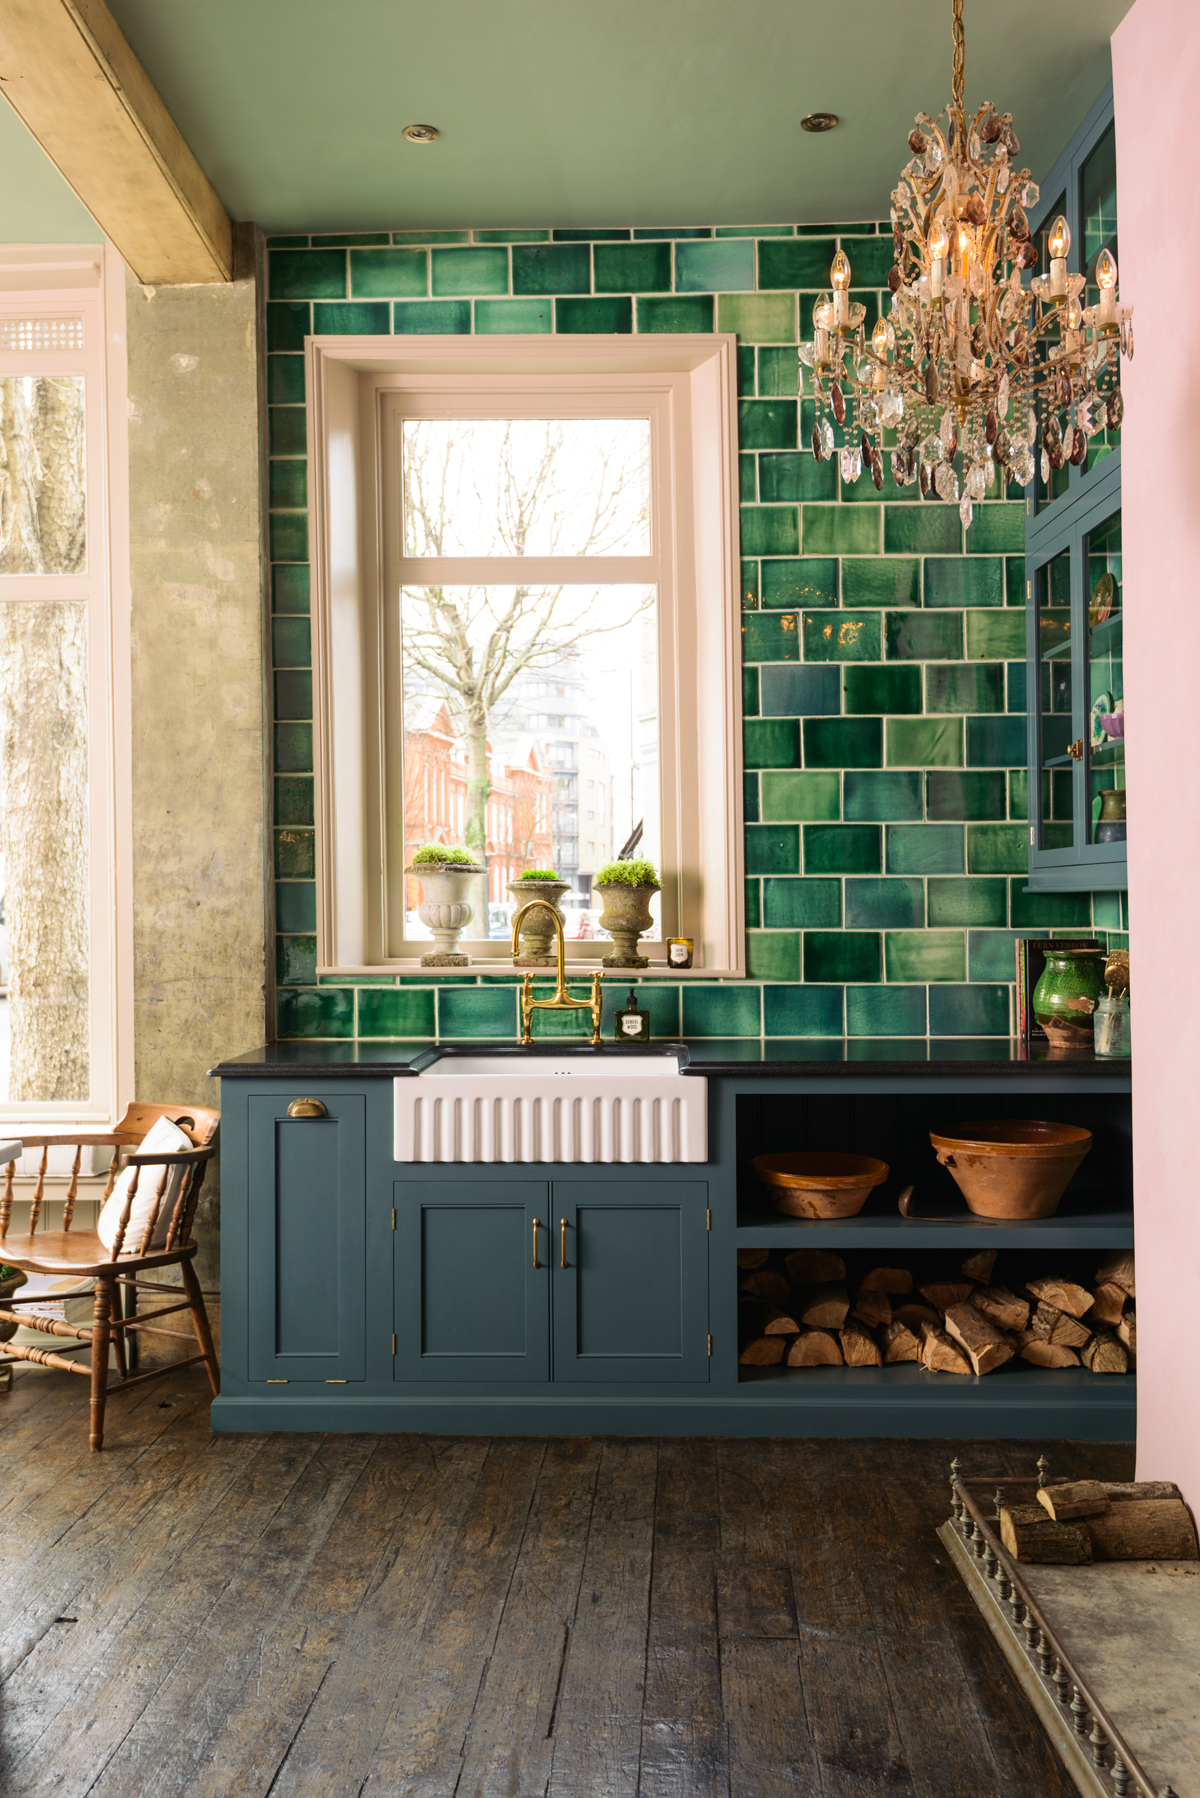 A Pink Amp Green Kitchen Honestly Wtf